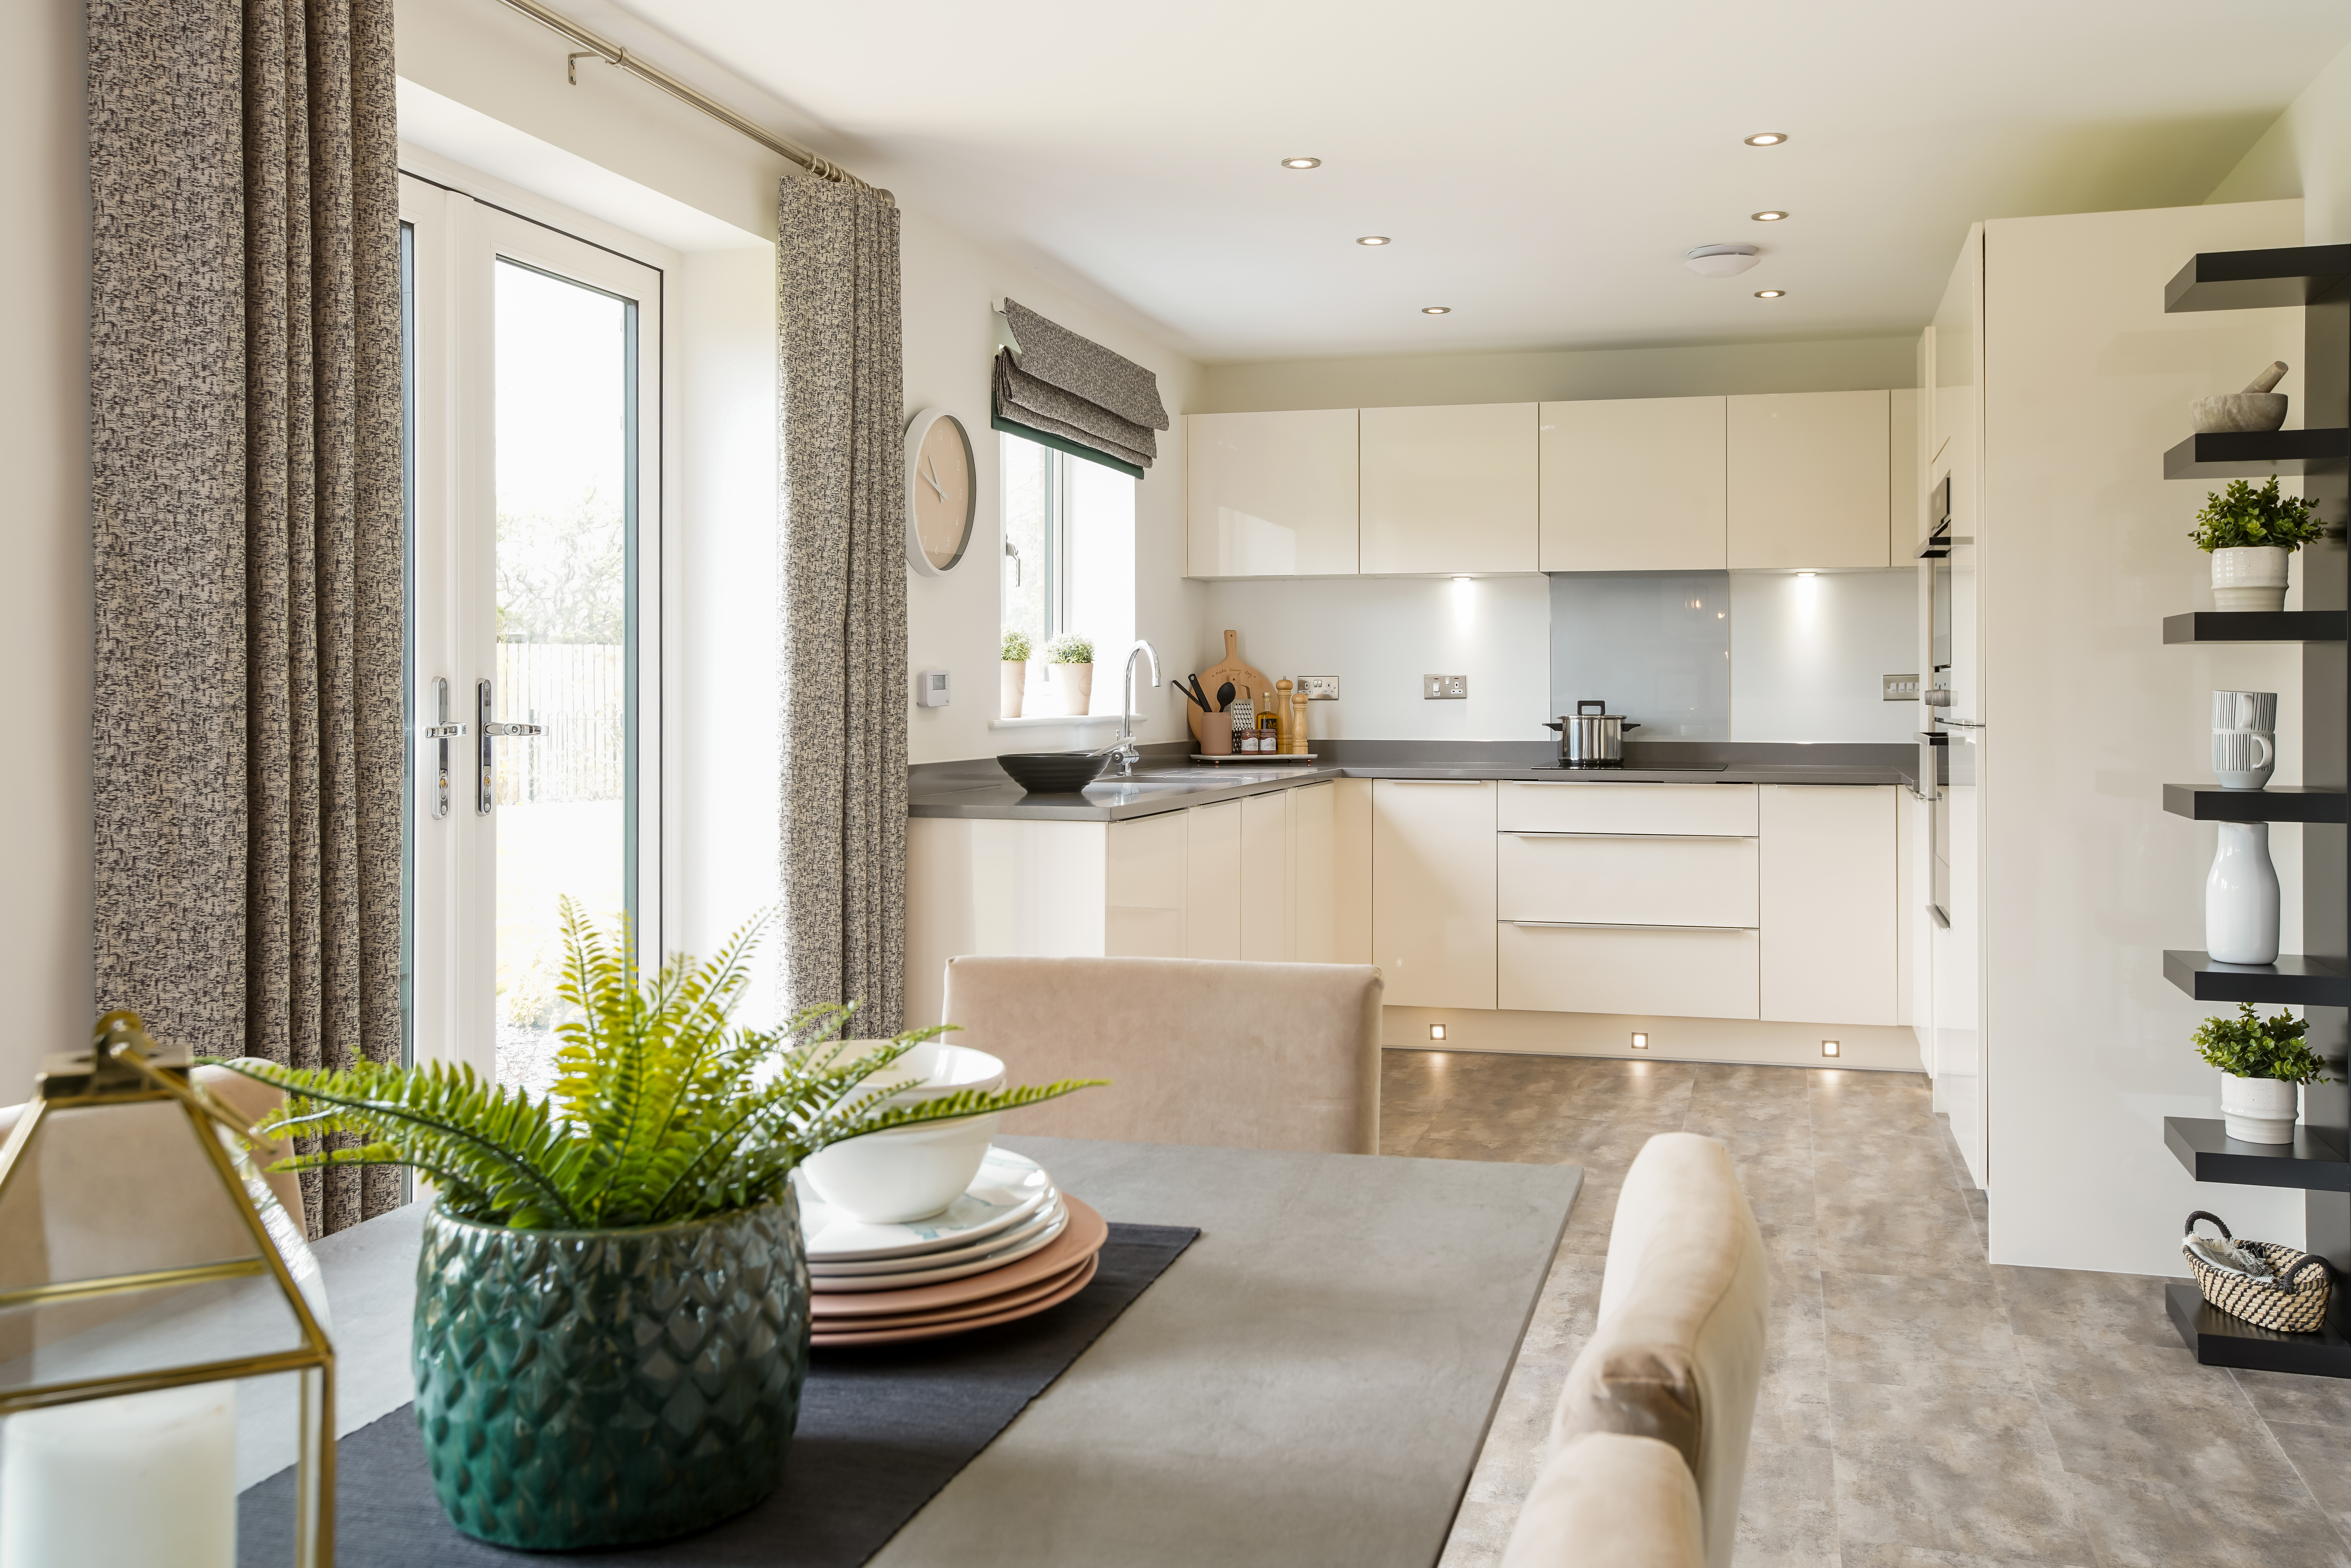 TW_NE_Eden Gardens_Downham_Kitchen 2